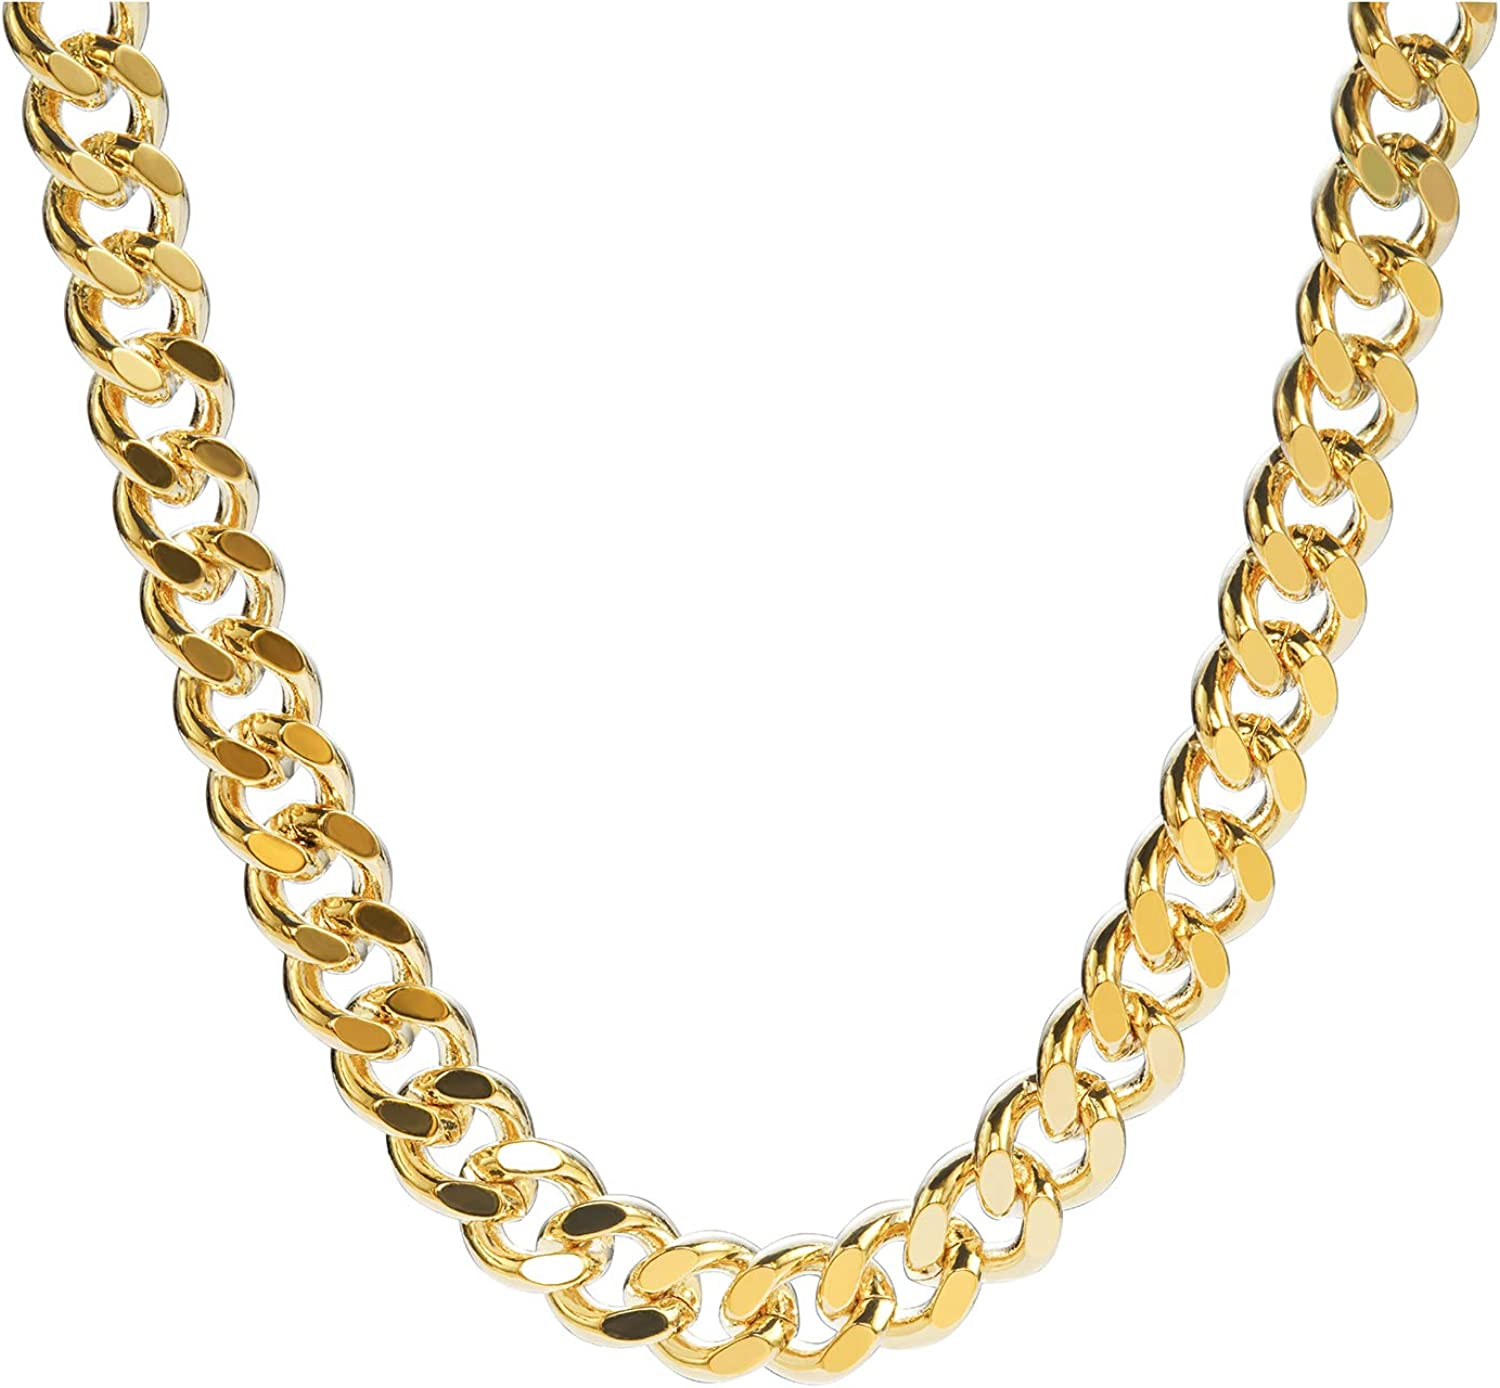 Tennis Chain Necklace White Gold-Plated Minneapolis Mall Direct stock discount Sterling Silver